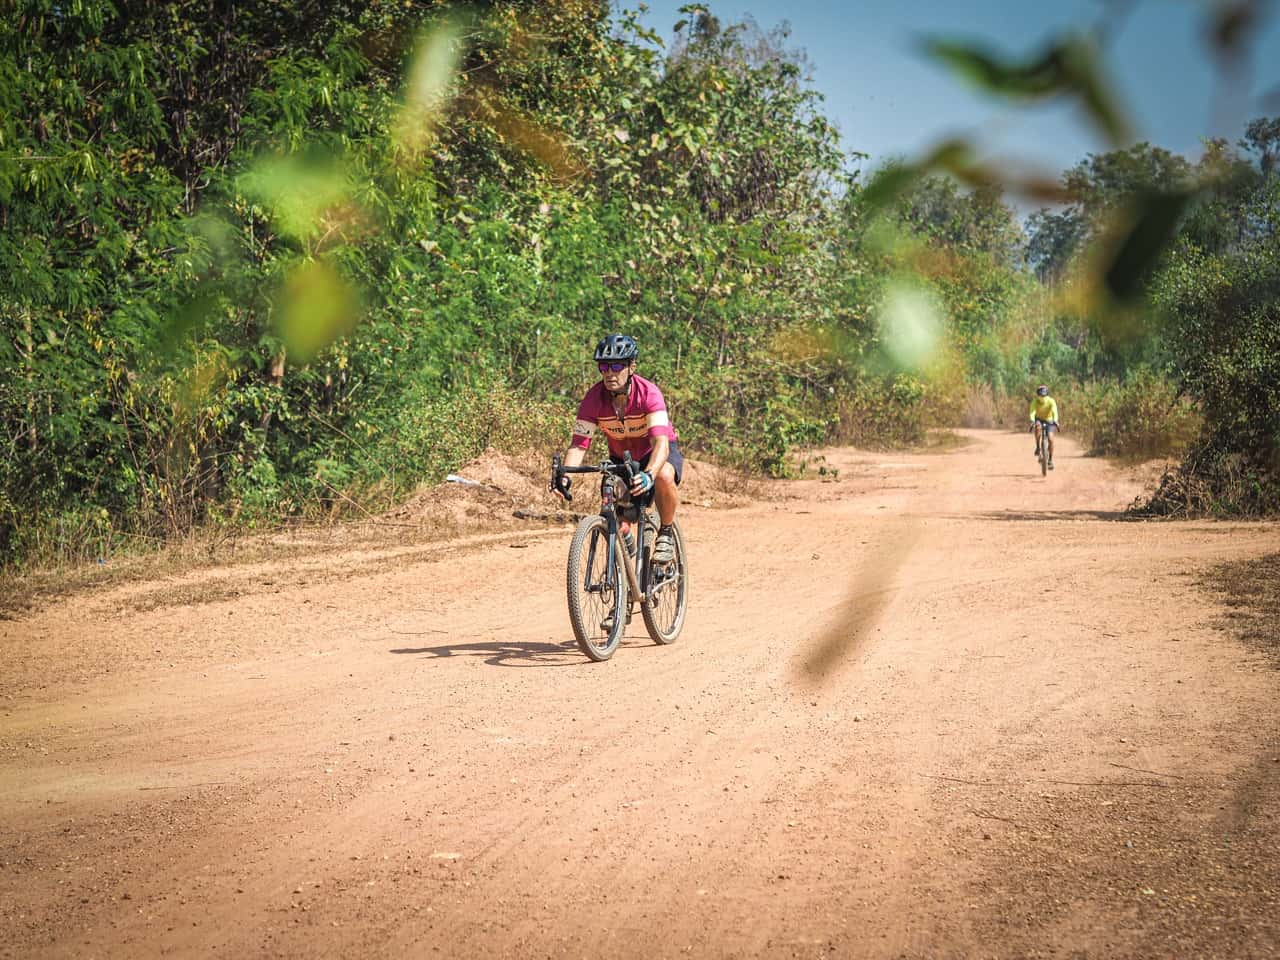 A cycling adventure on the gravel roads